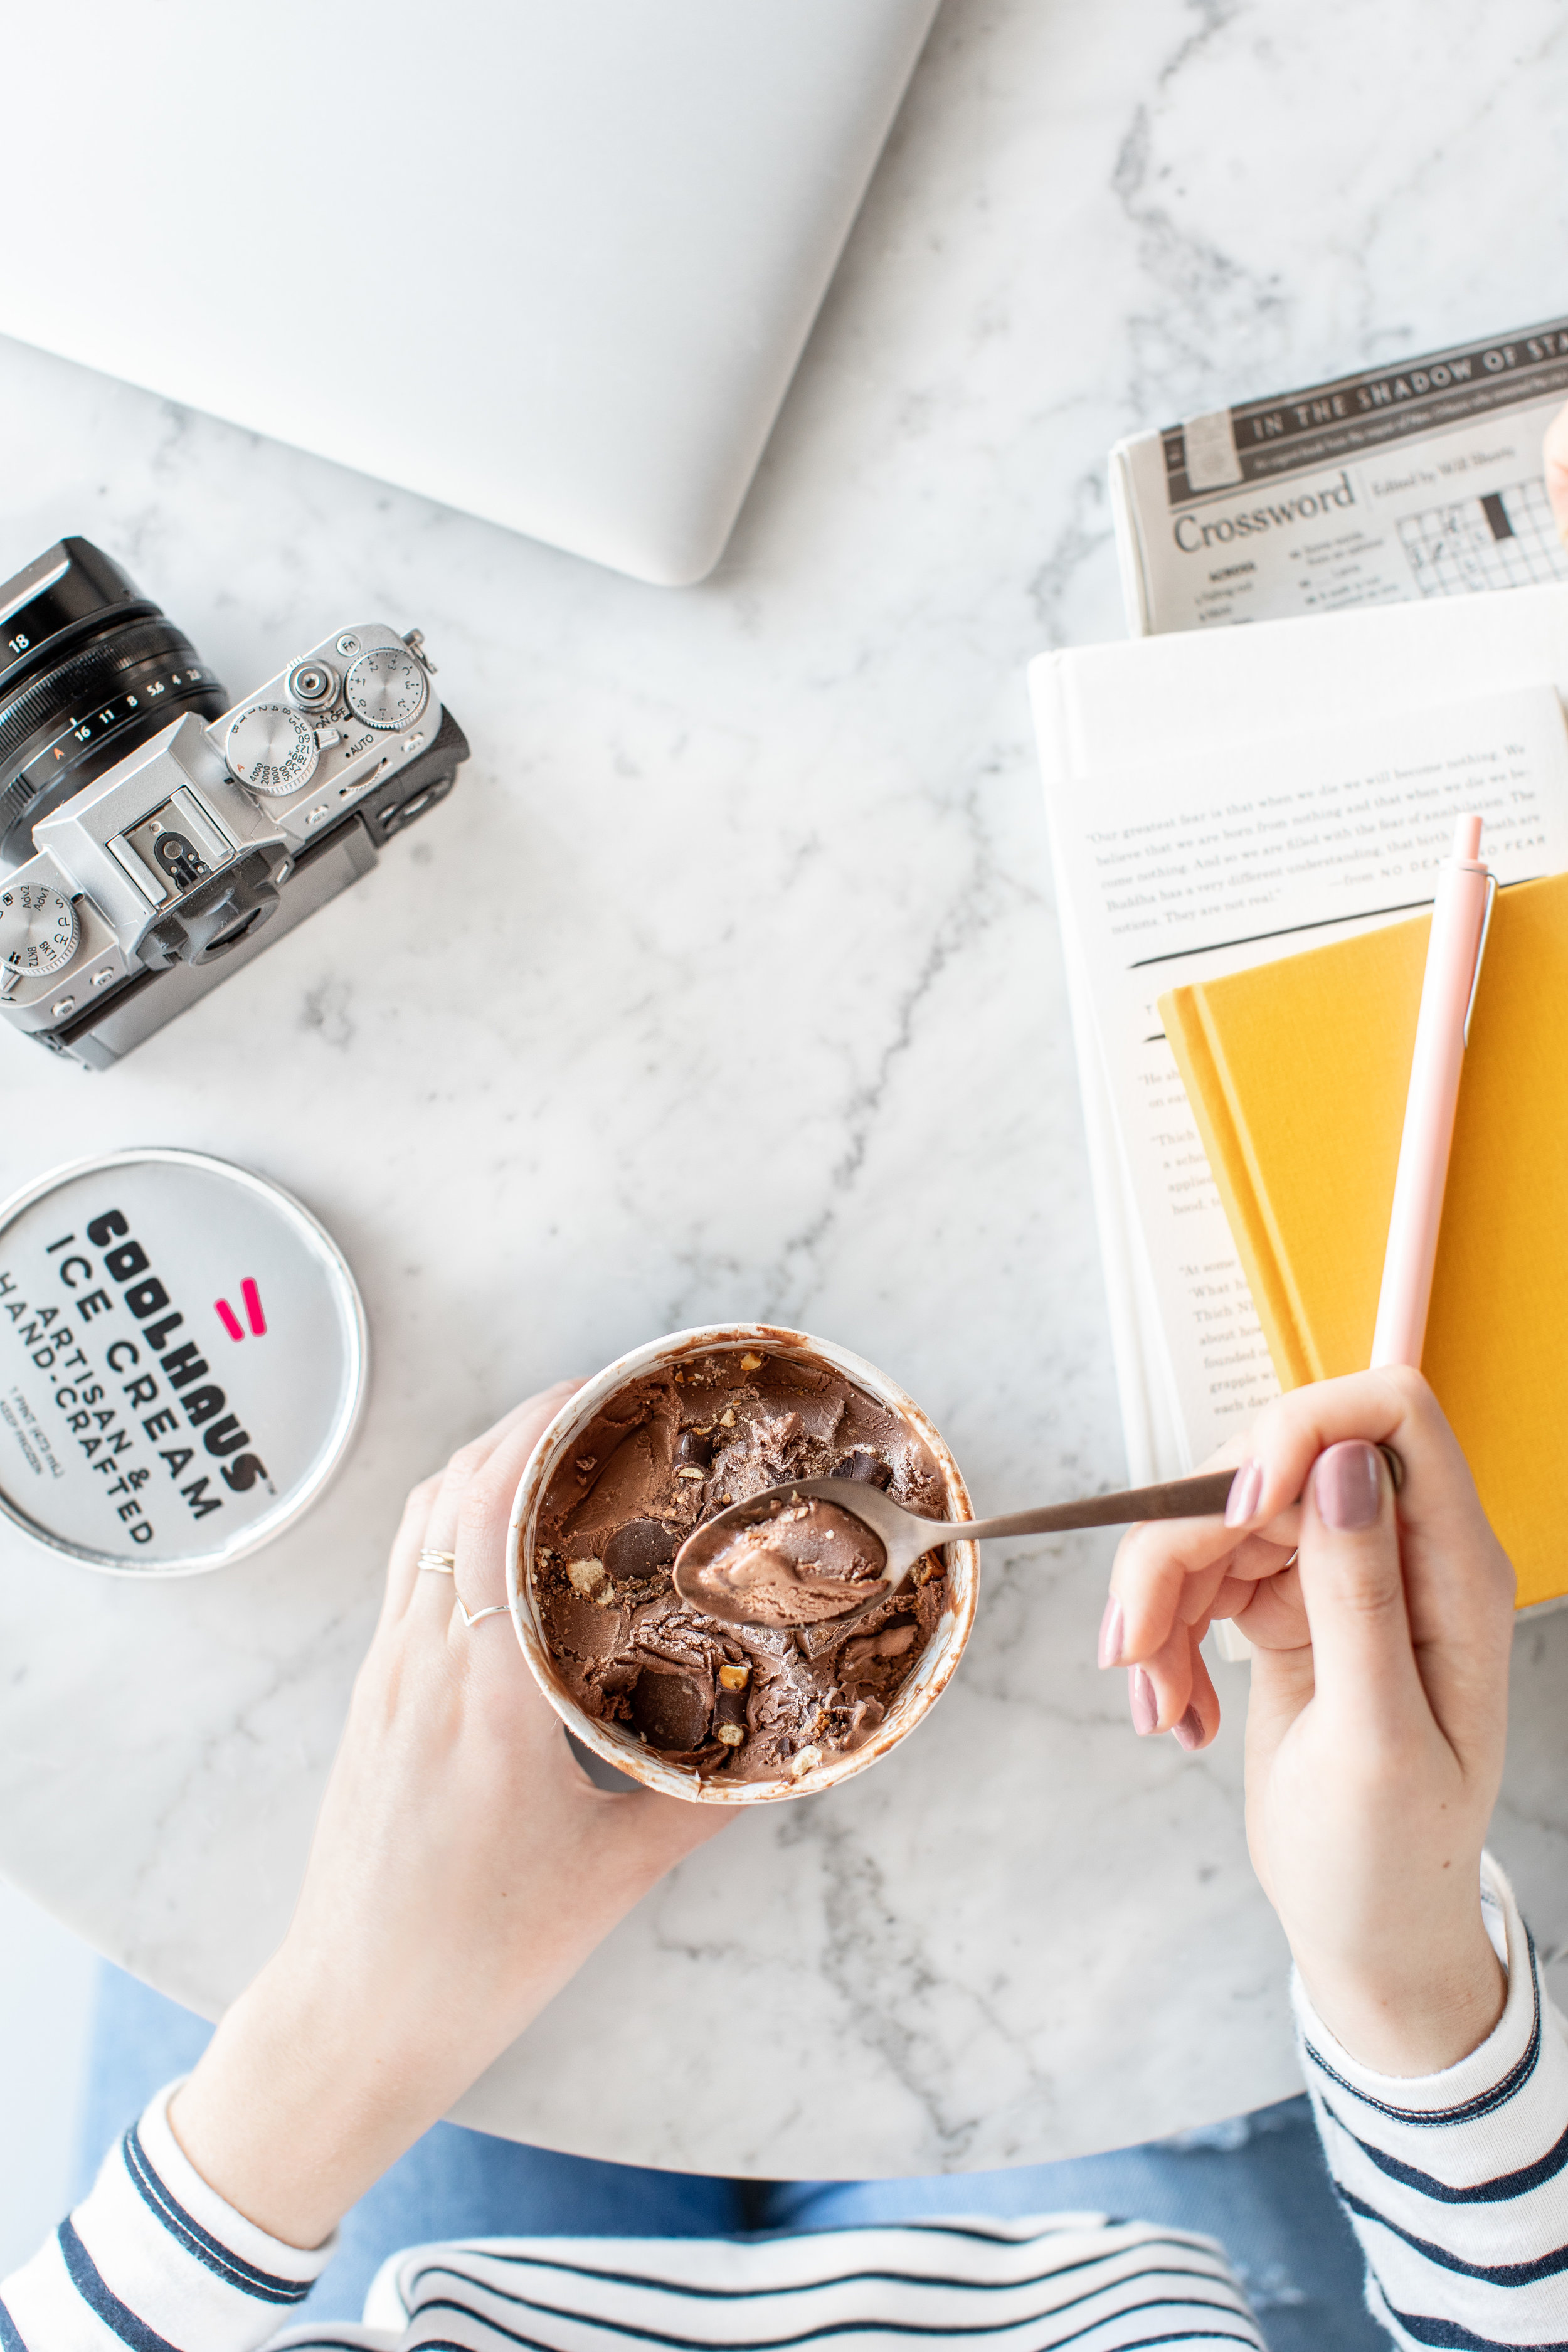 Coolhaus_Creative Fuel Flatlay-2.JPG